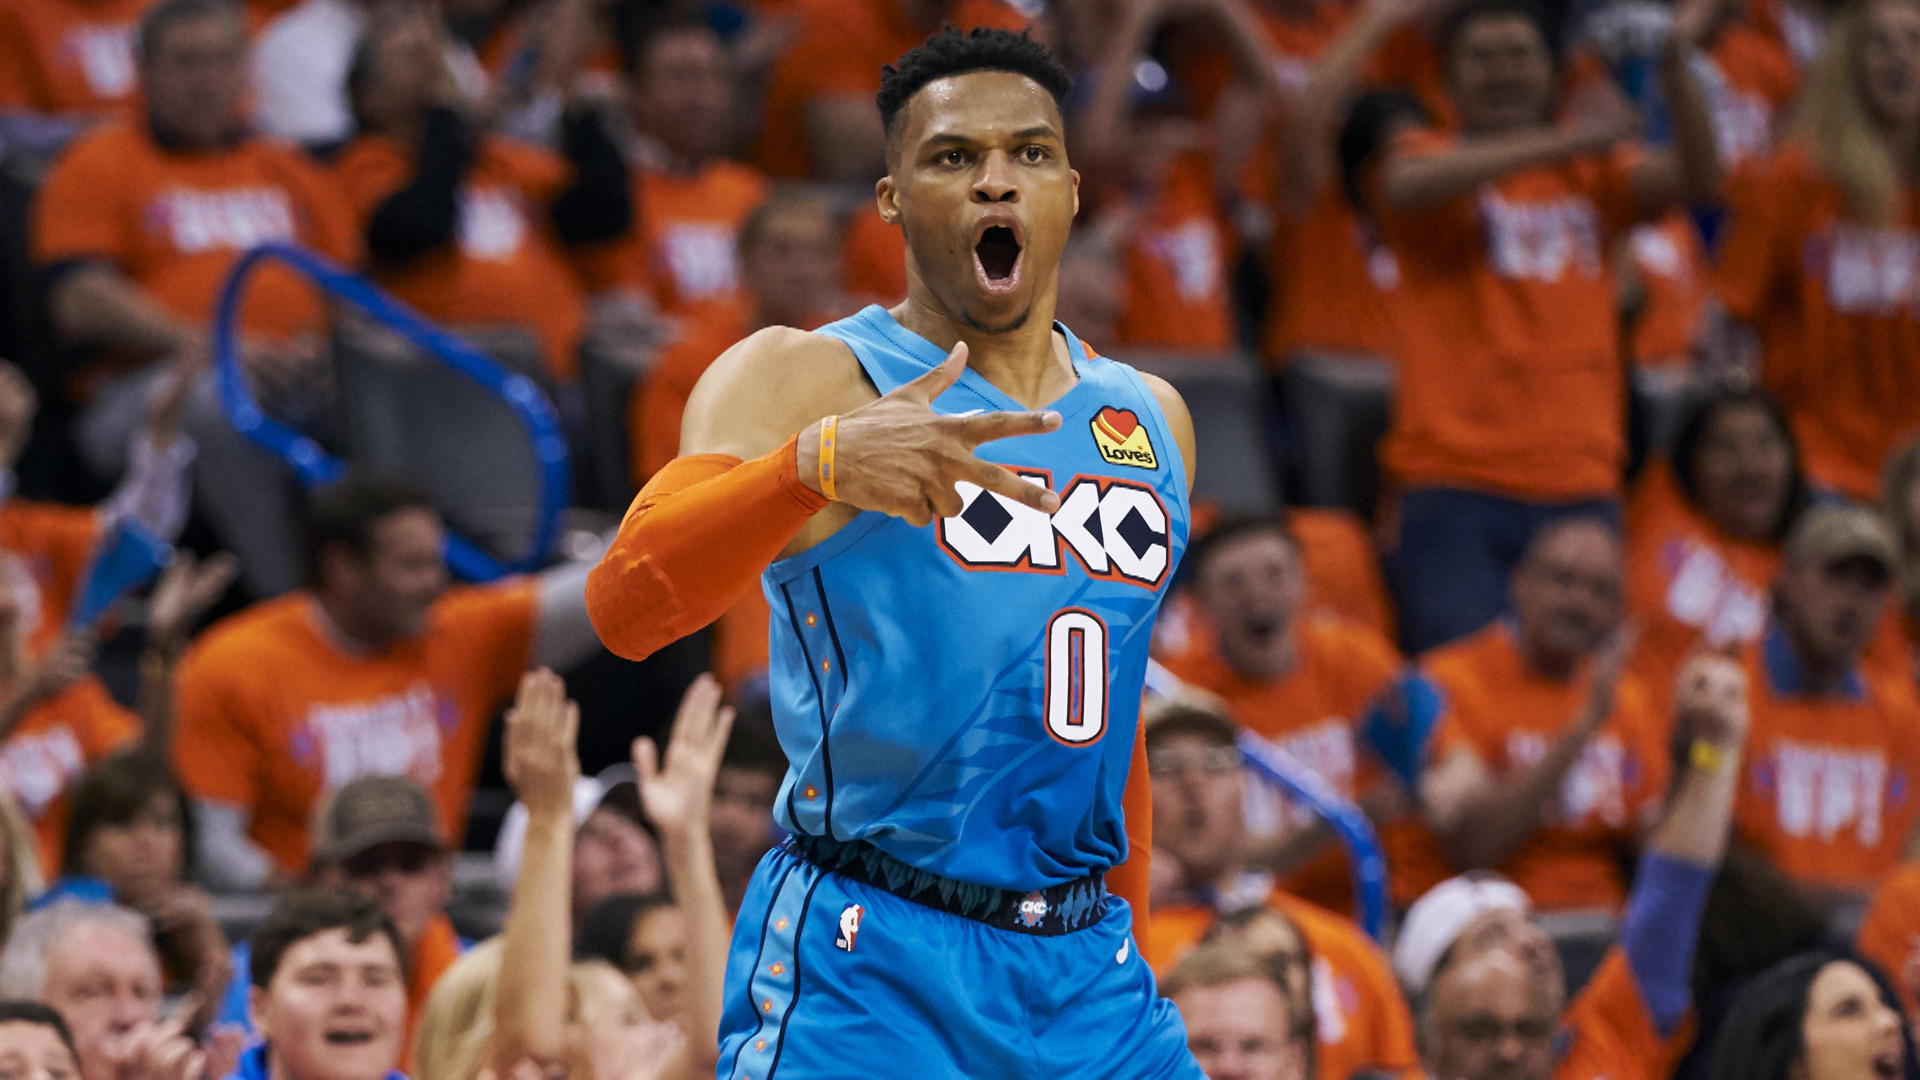 NBA Playoffs 2019: Thunder vs. Blazers odds, picks, Game 4 predictions from model on 77-62 roll